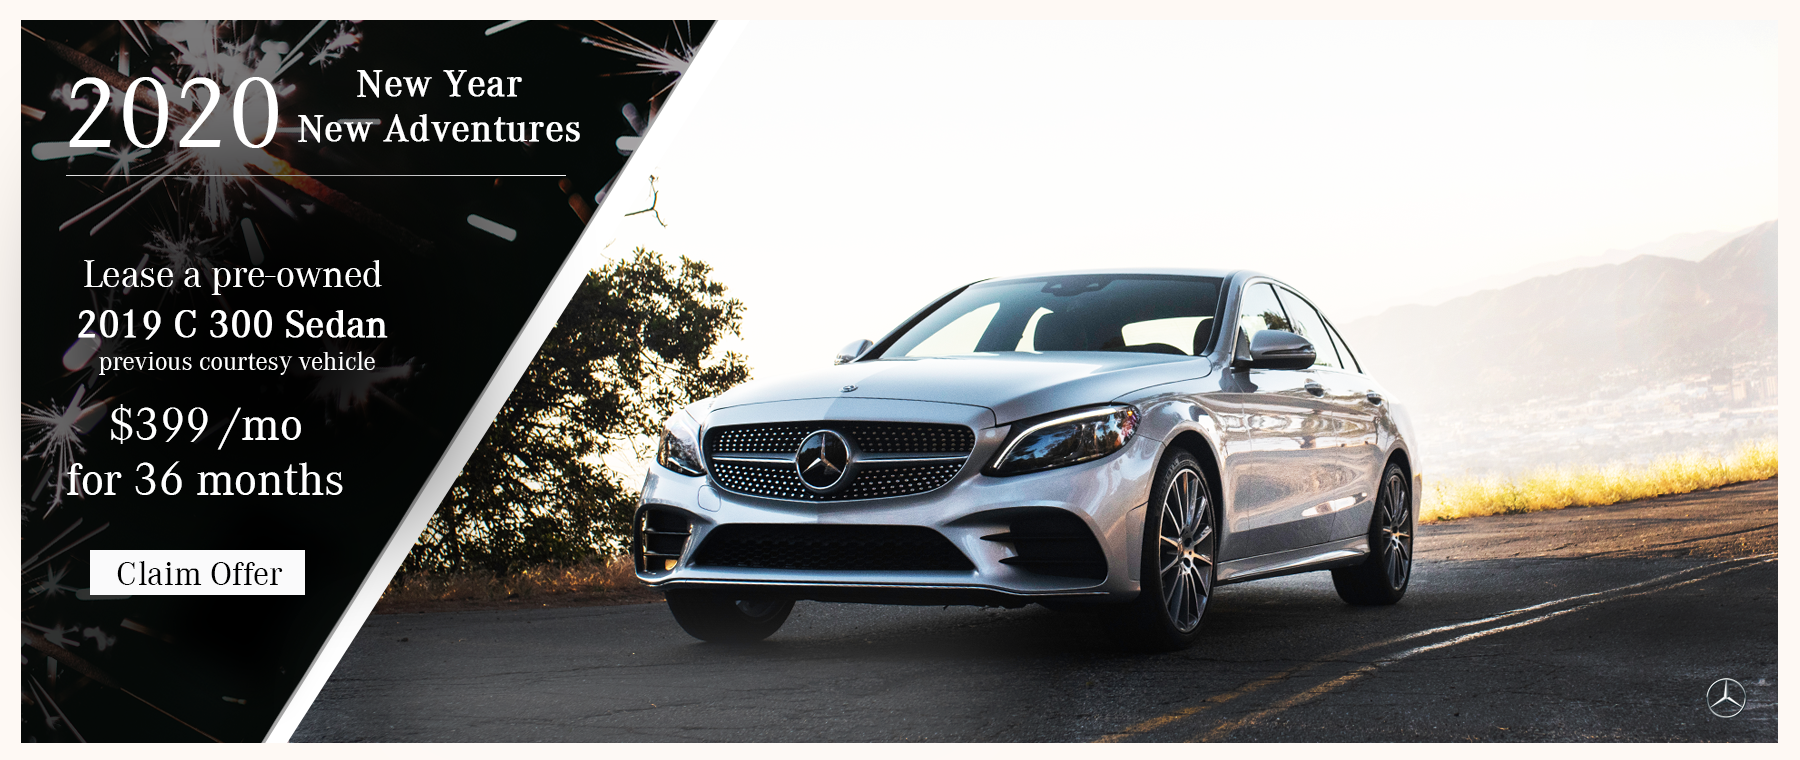 Lease a 2019 C 300 Sedan for $399 a month